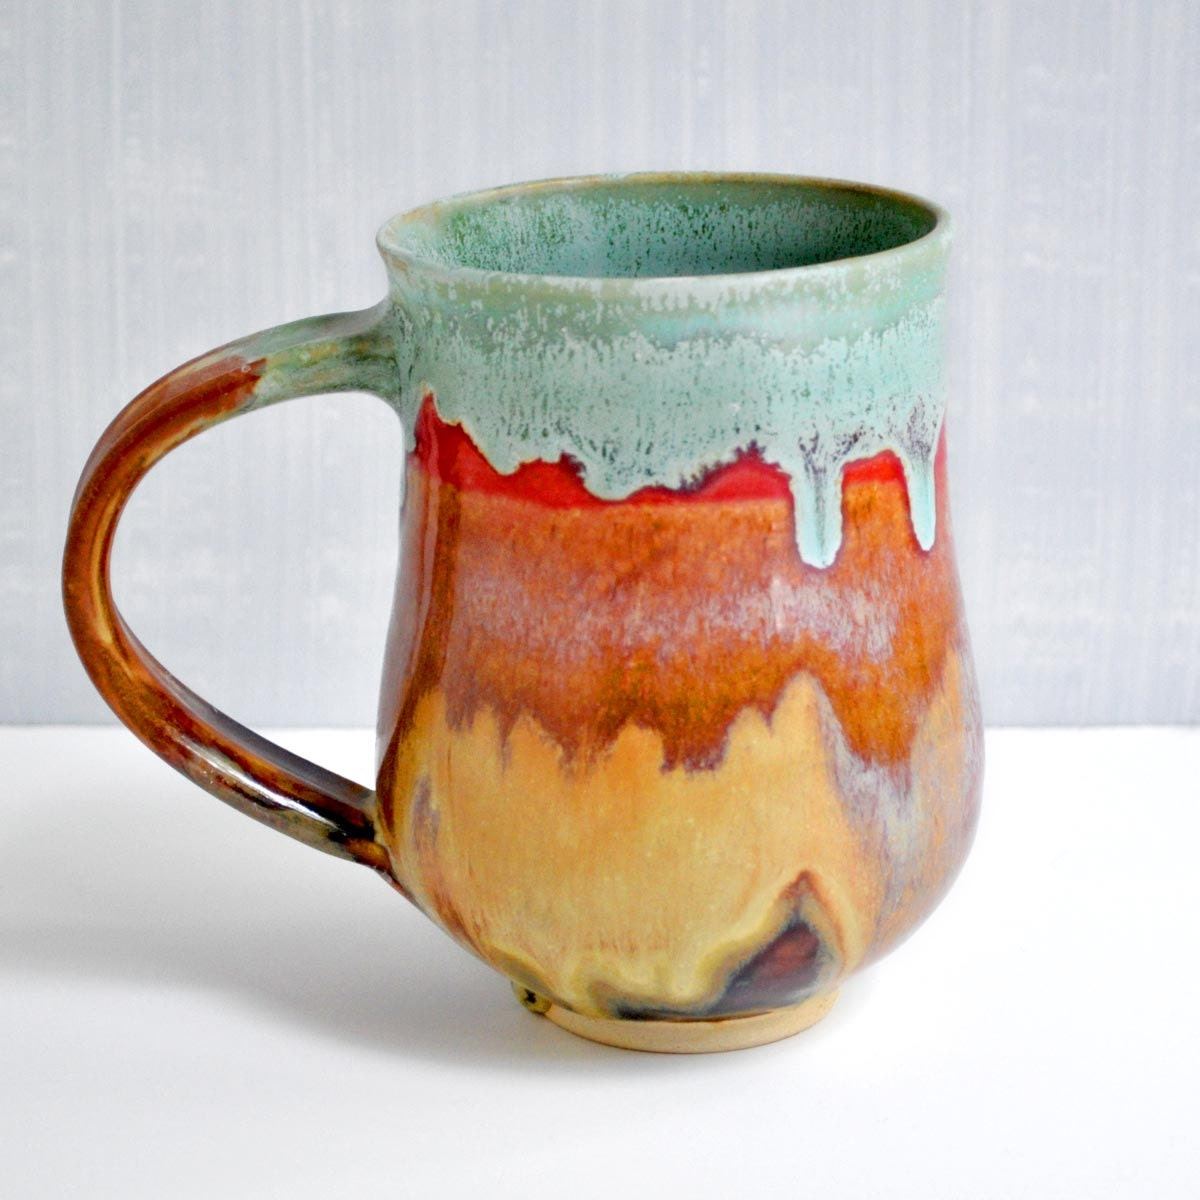 Handmade Pottery Mug Seconds Sale White Ceramic Cup By